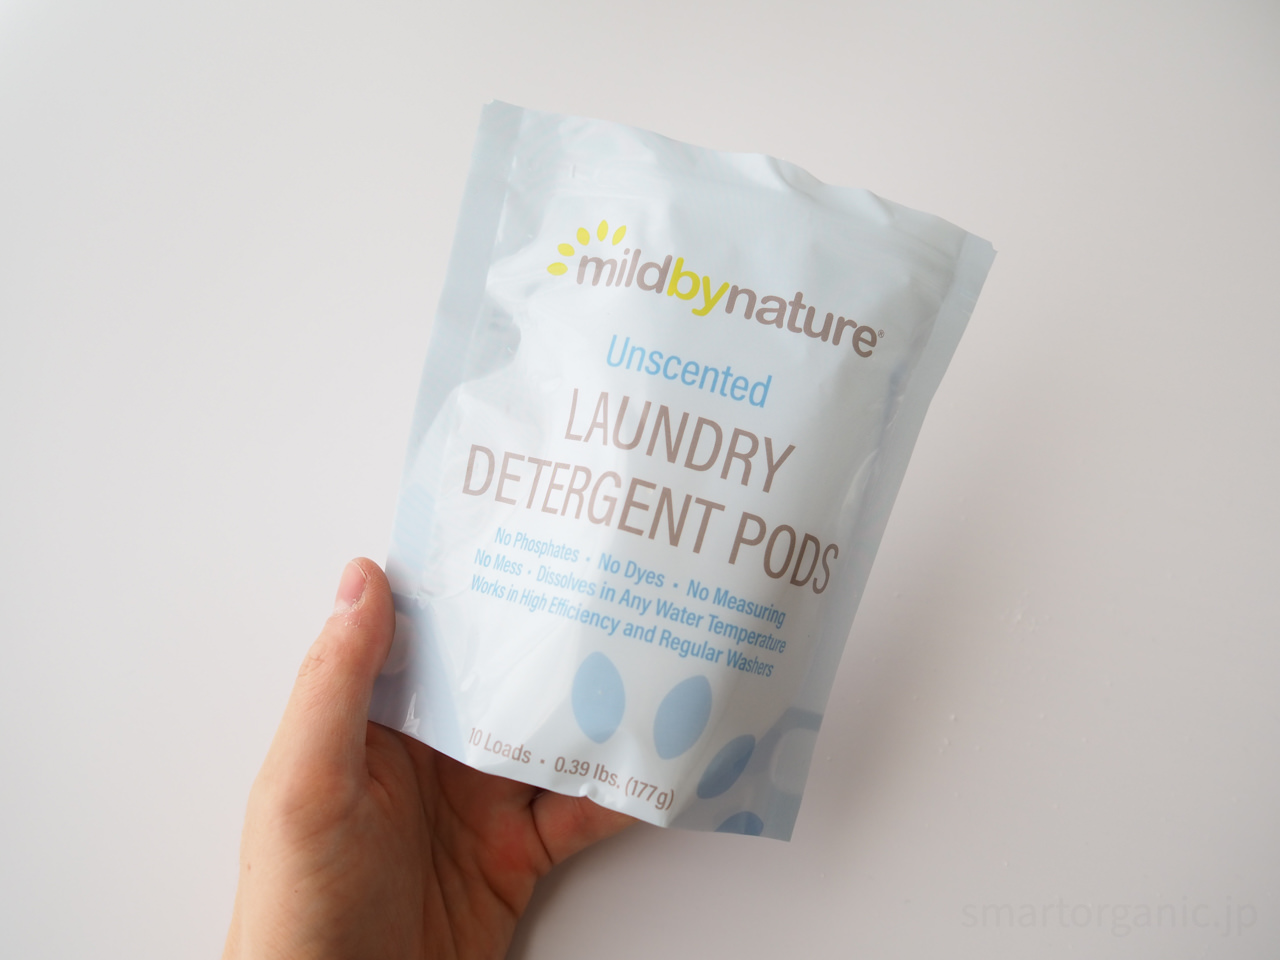 Mild By Natureの洗濯用洗剤ジェルボール